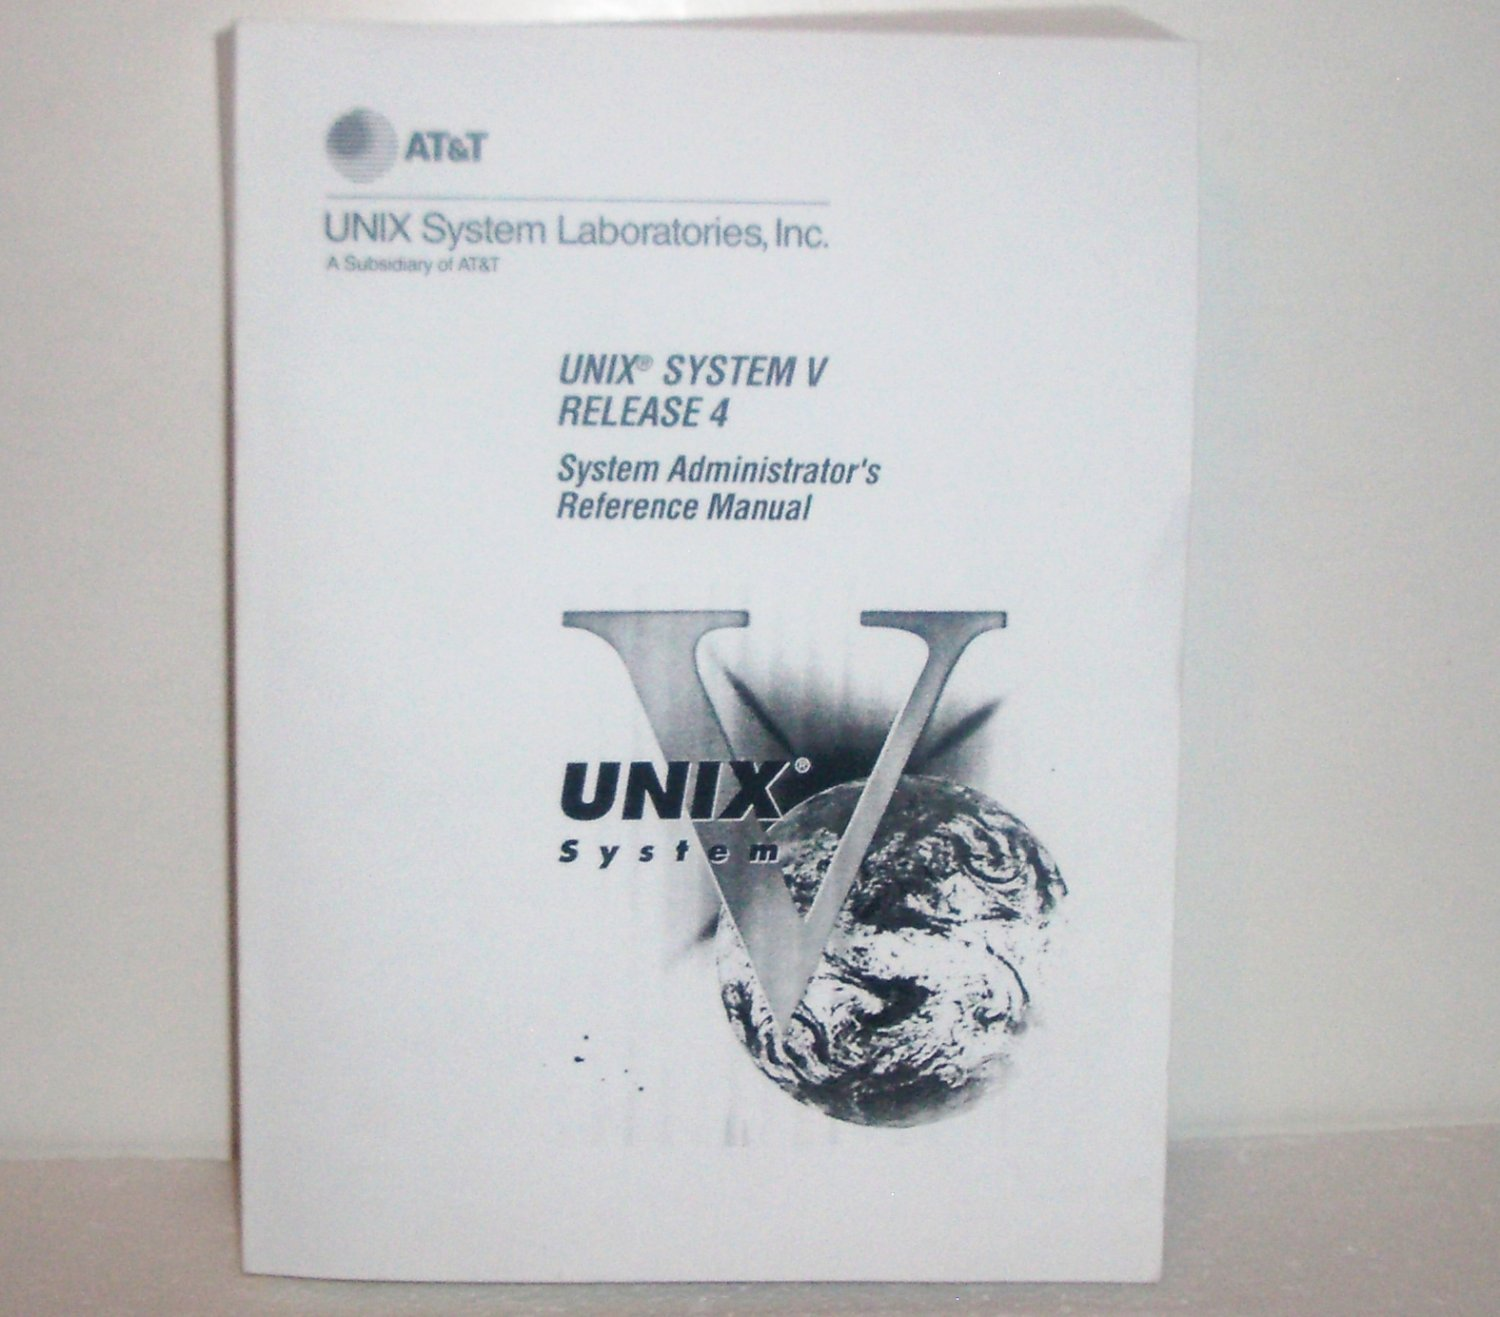 UNIX System V, Release 4 System Administrator's Reference Manual : Professional Technical Reference